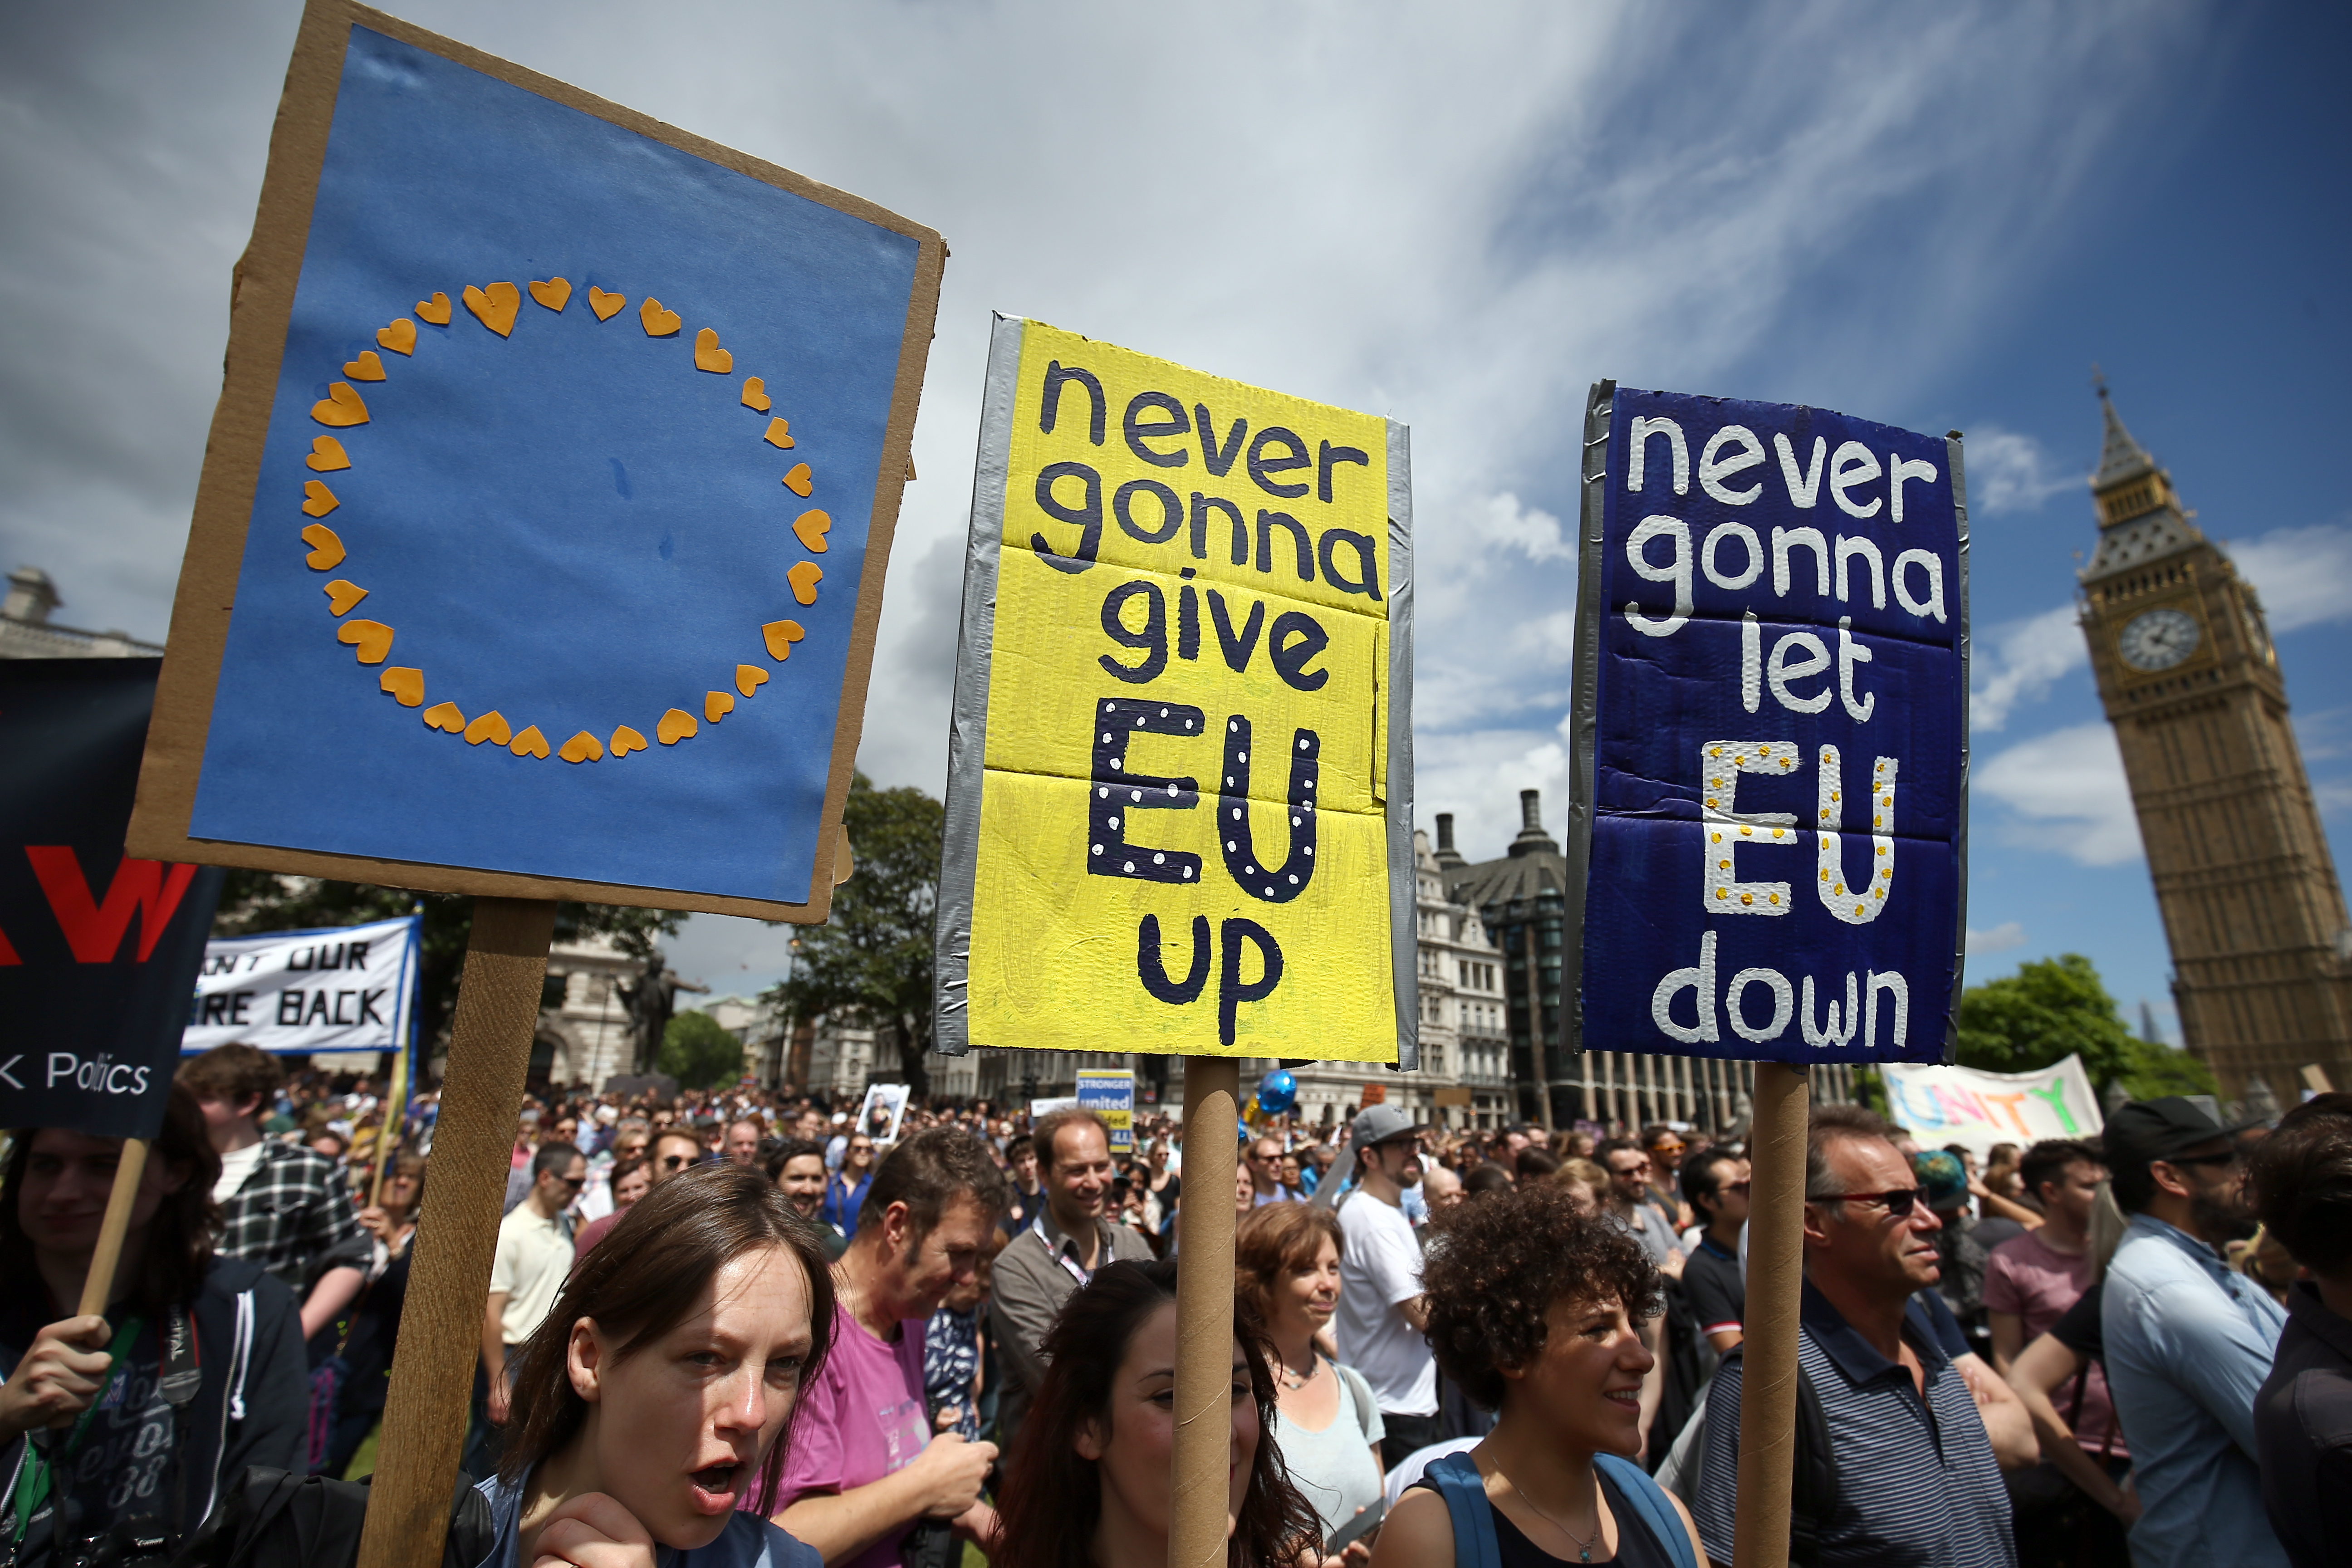 Protestors hold banners in Parliament Square during a 'March for Europe' demonstration against Britain's decision to leave the European Union, central London, Britain, July 2, 2016.